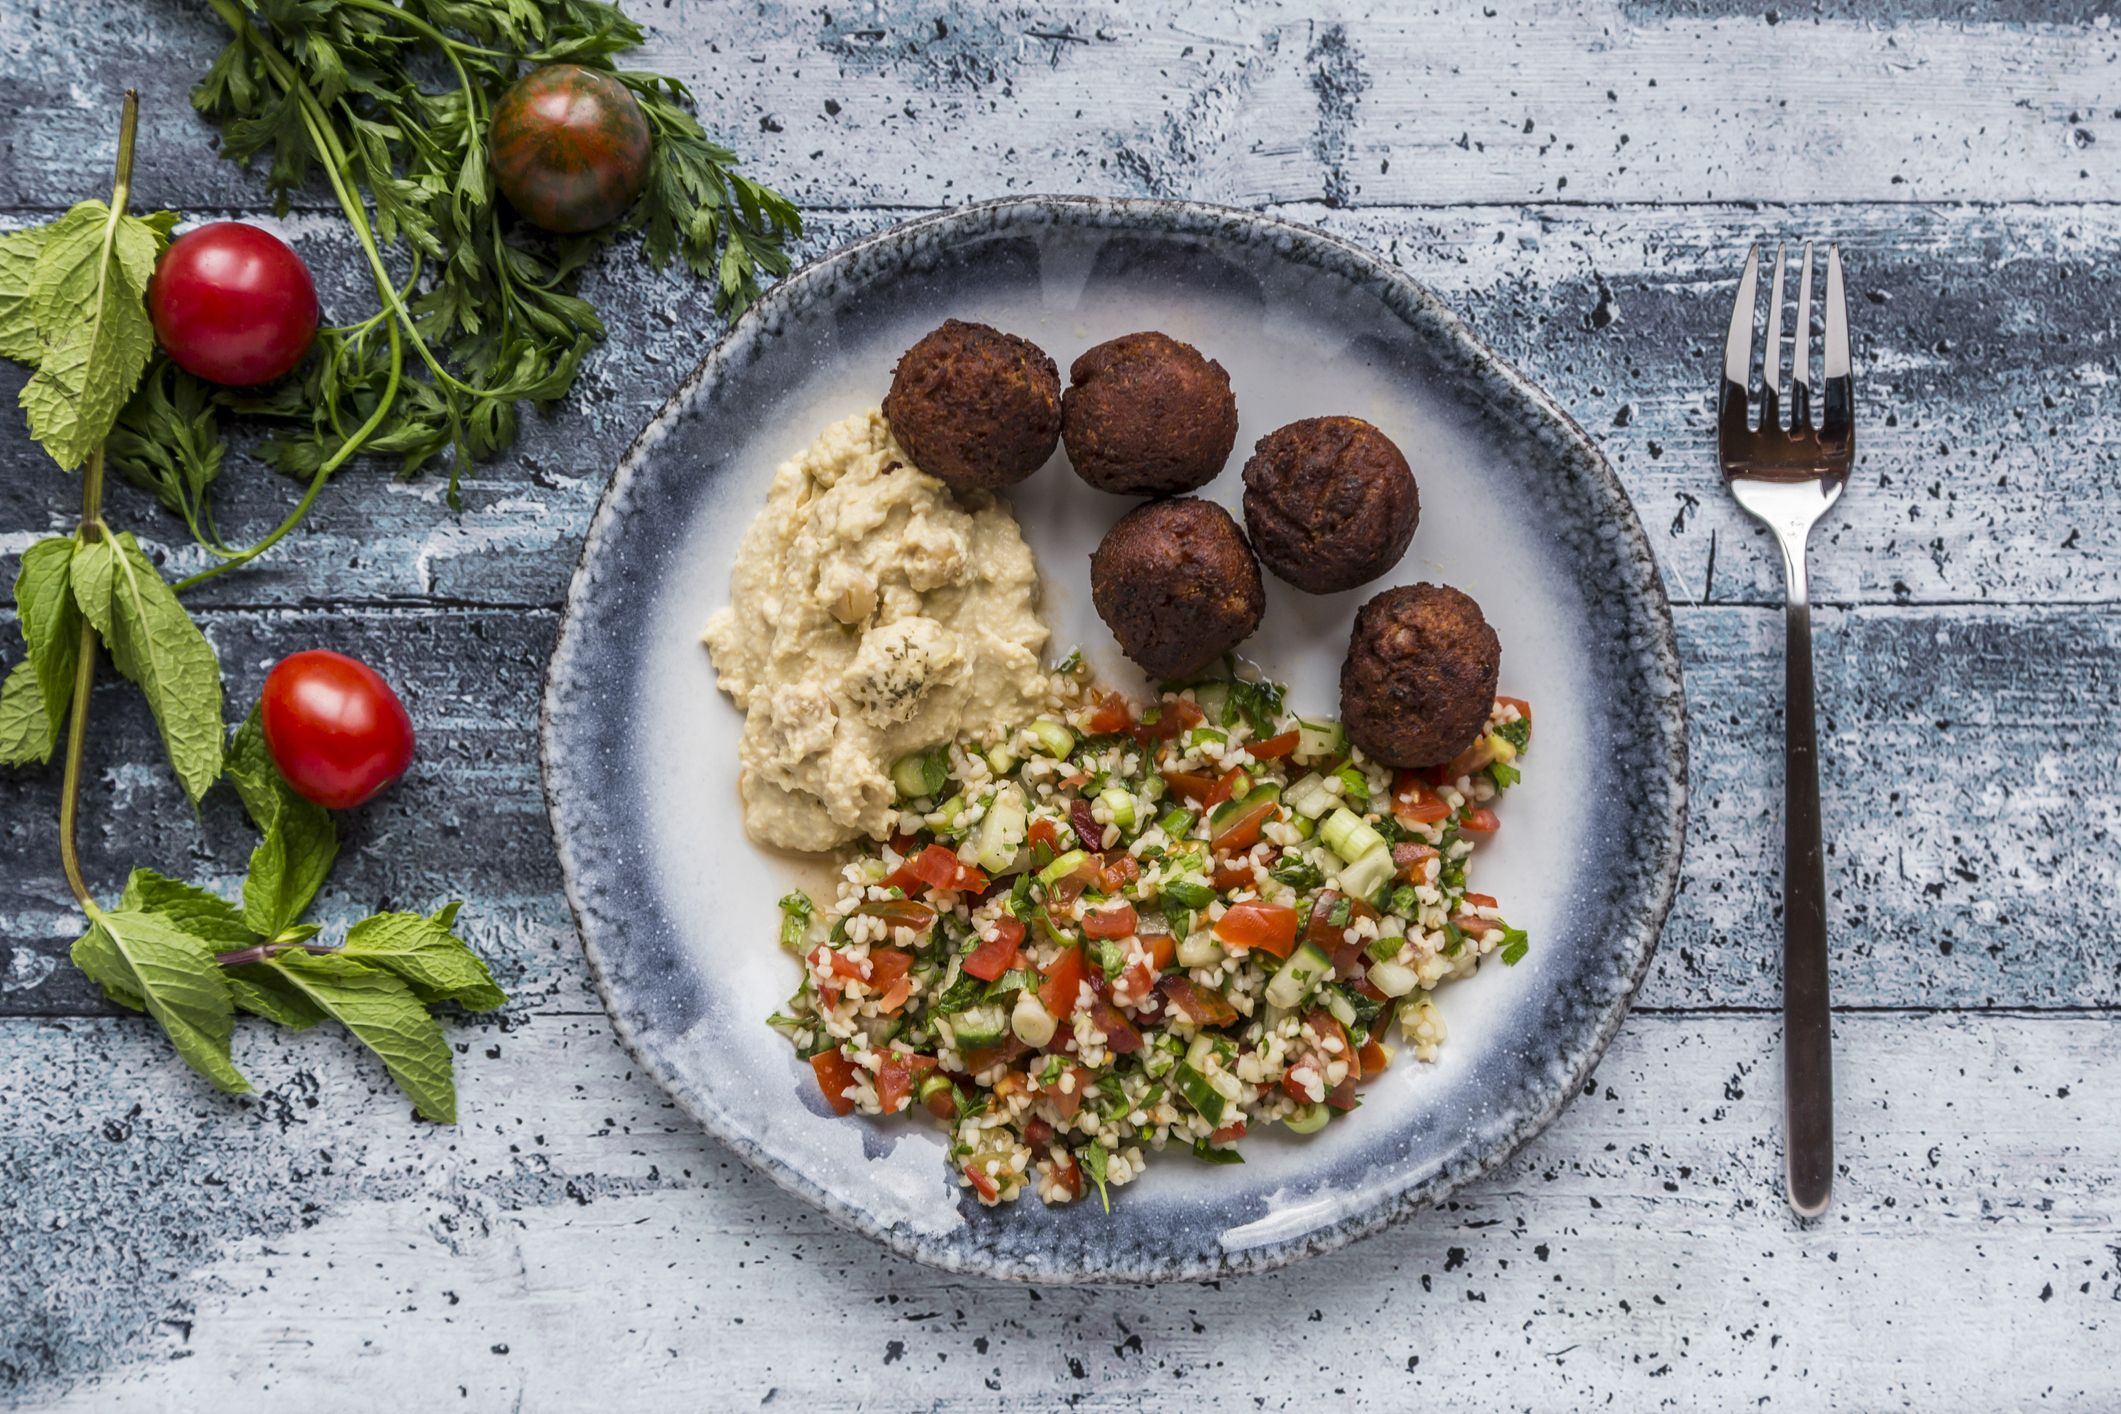 Is Falafel Healthy? 3 Dietitians Give Their Take